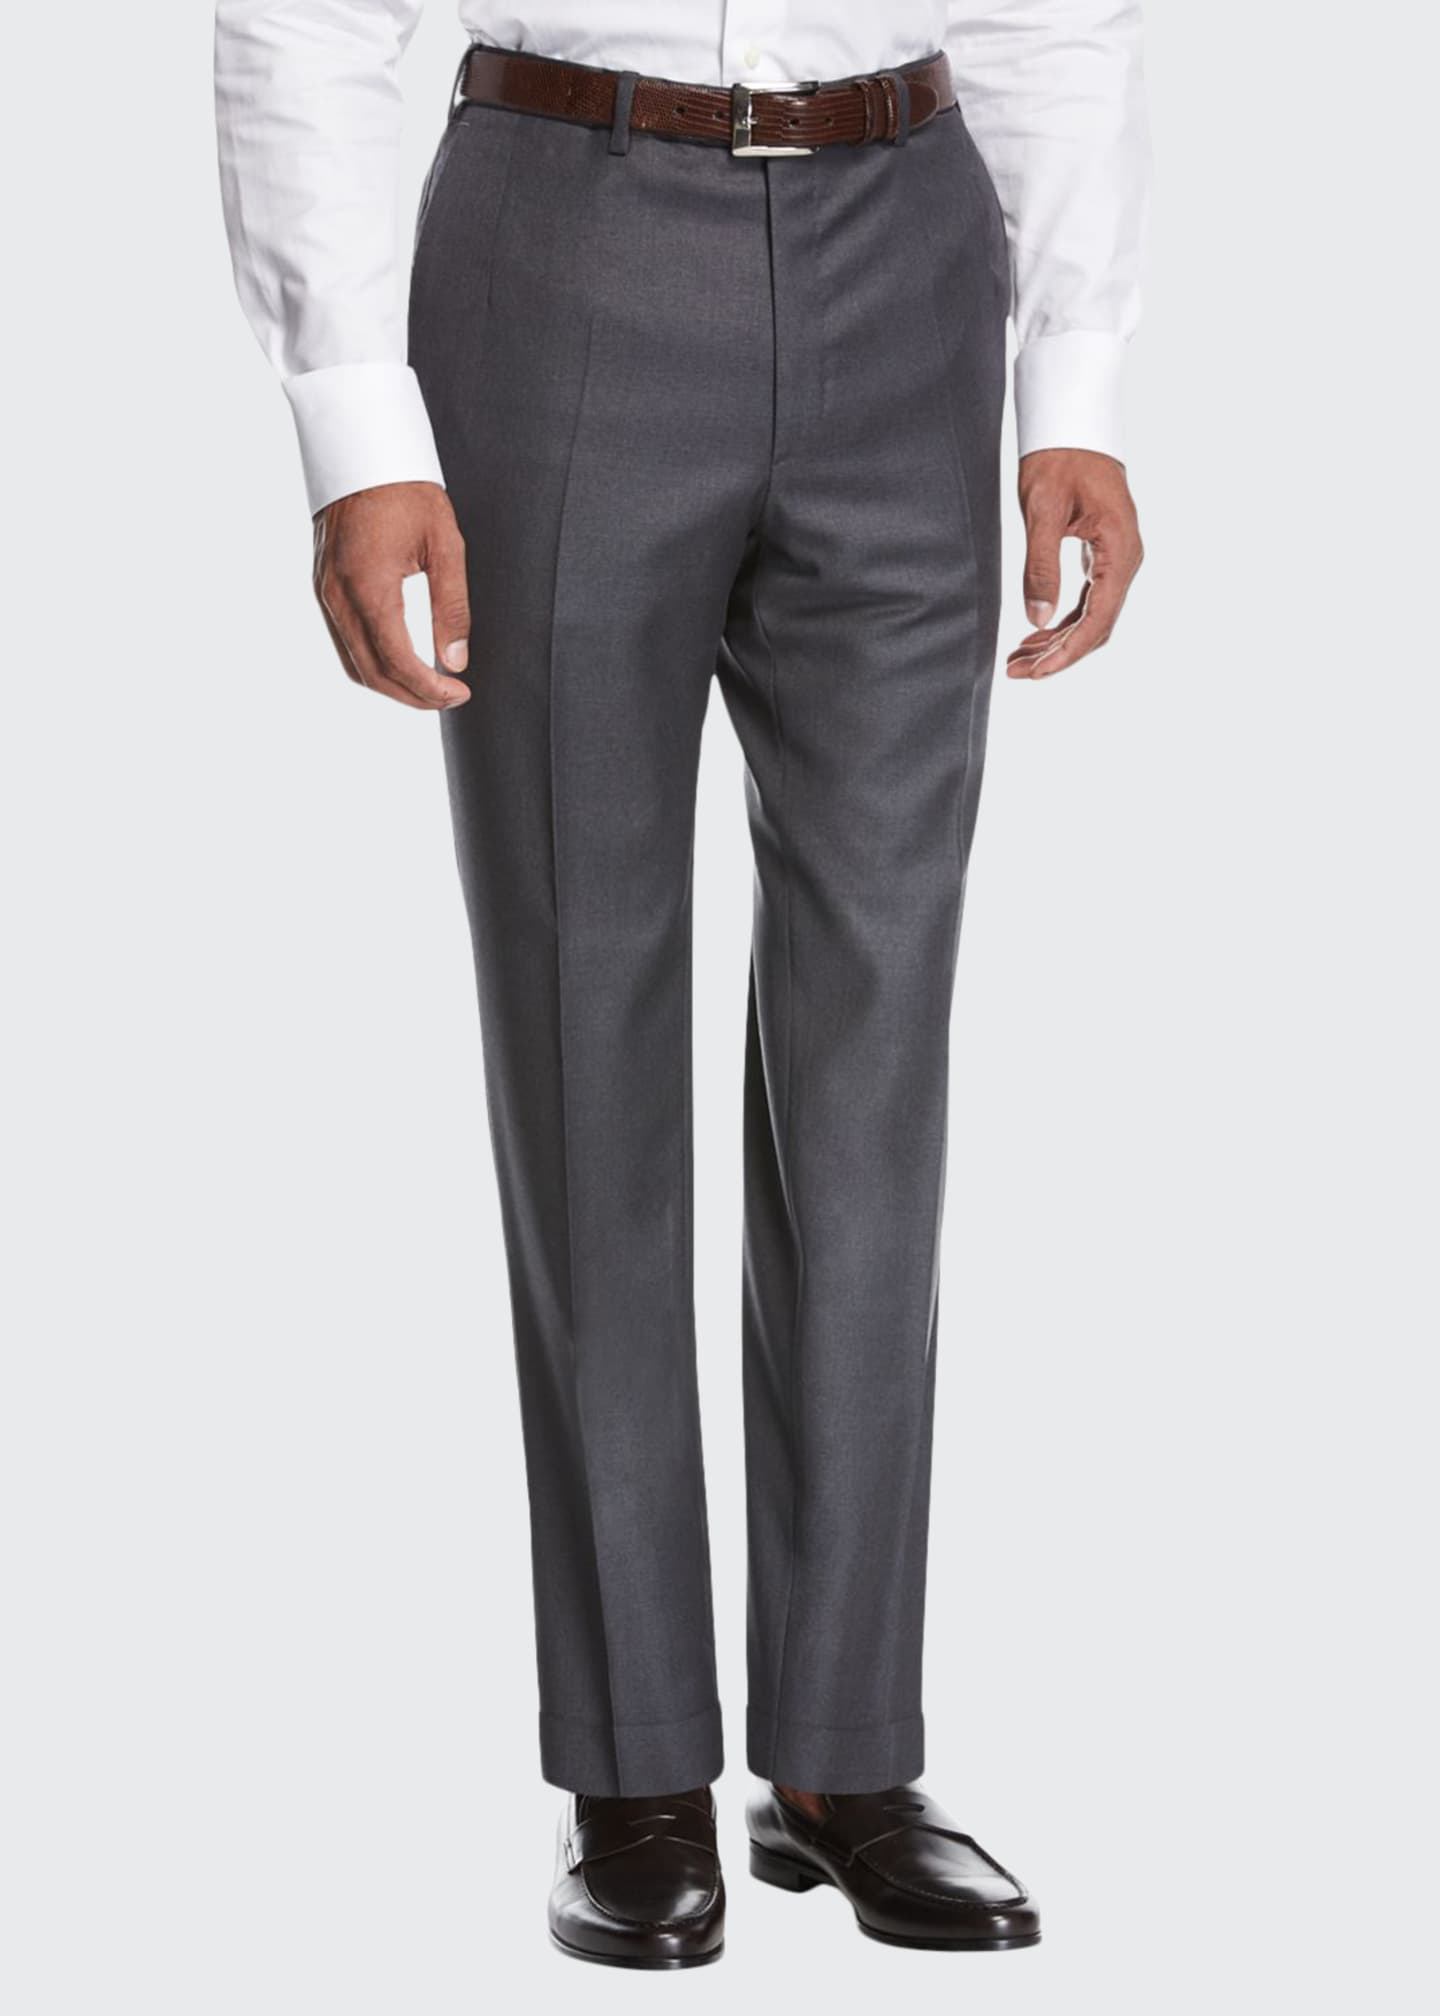 Brioni Wool Flat-Front Trousers, Gray